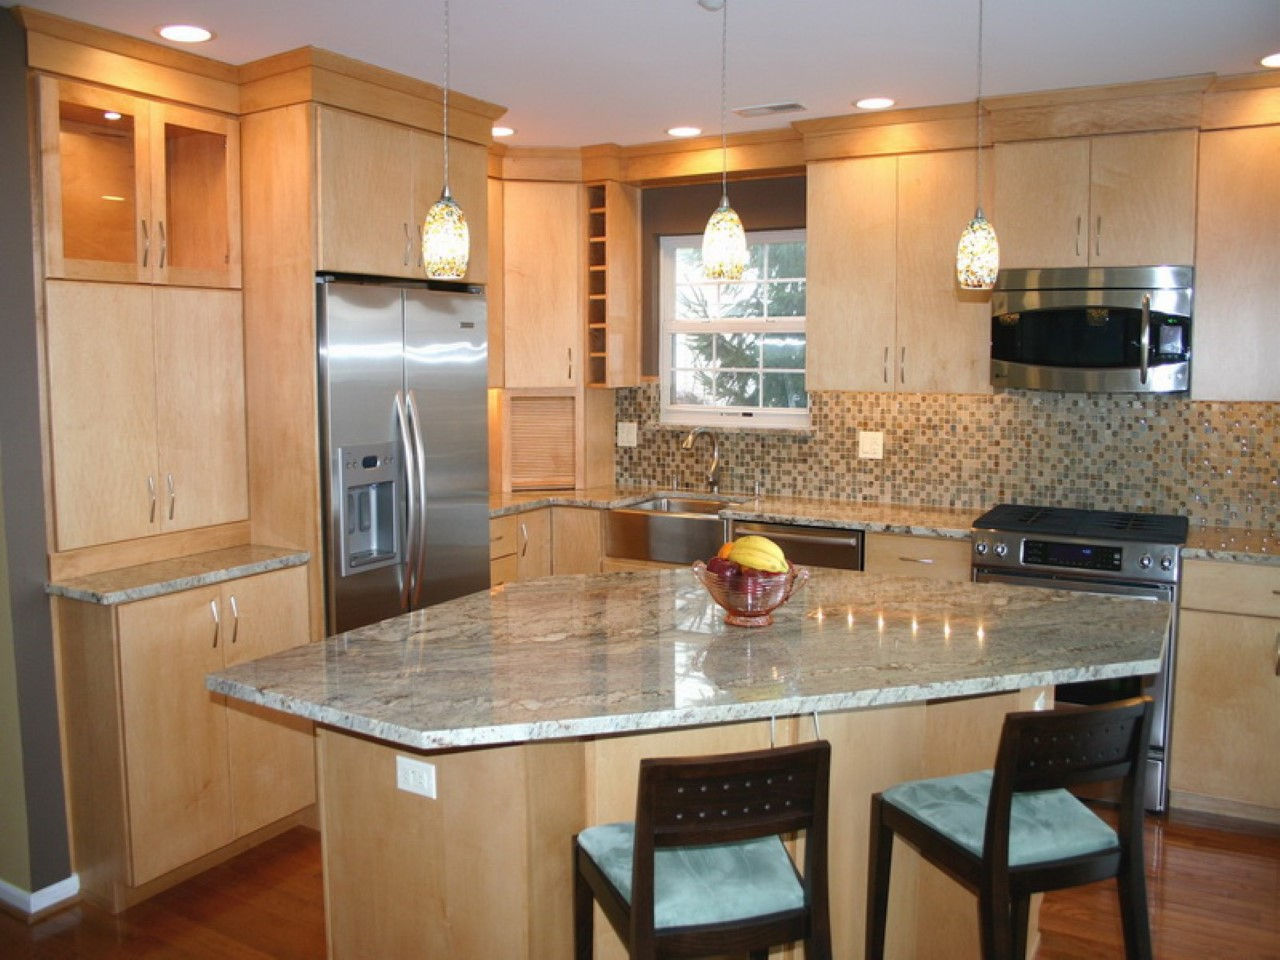 Best Small Kitchen Design with Island for Perfect